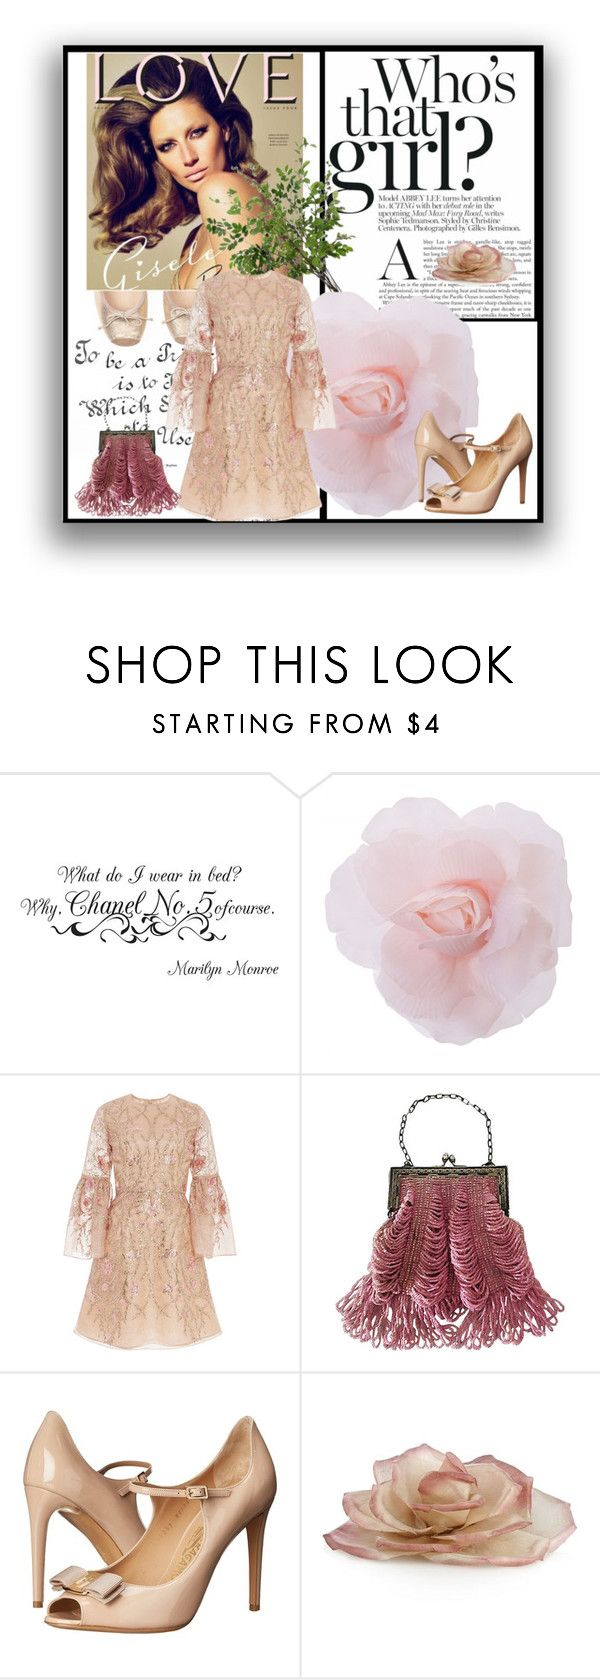 """Gisele Buchen"" by cool-cute ❤ liked on Polyvore featuring Chanel, Marchesa, Salvatore Ferragamo, Diane James and giselebuchen"